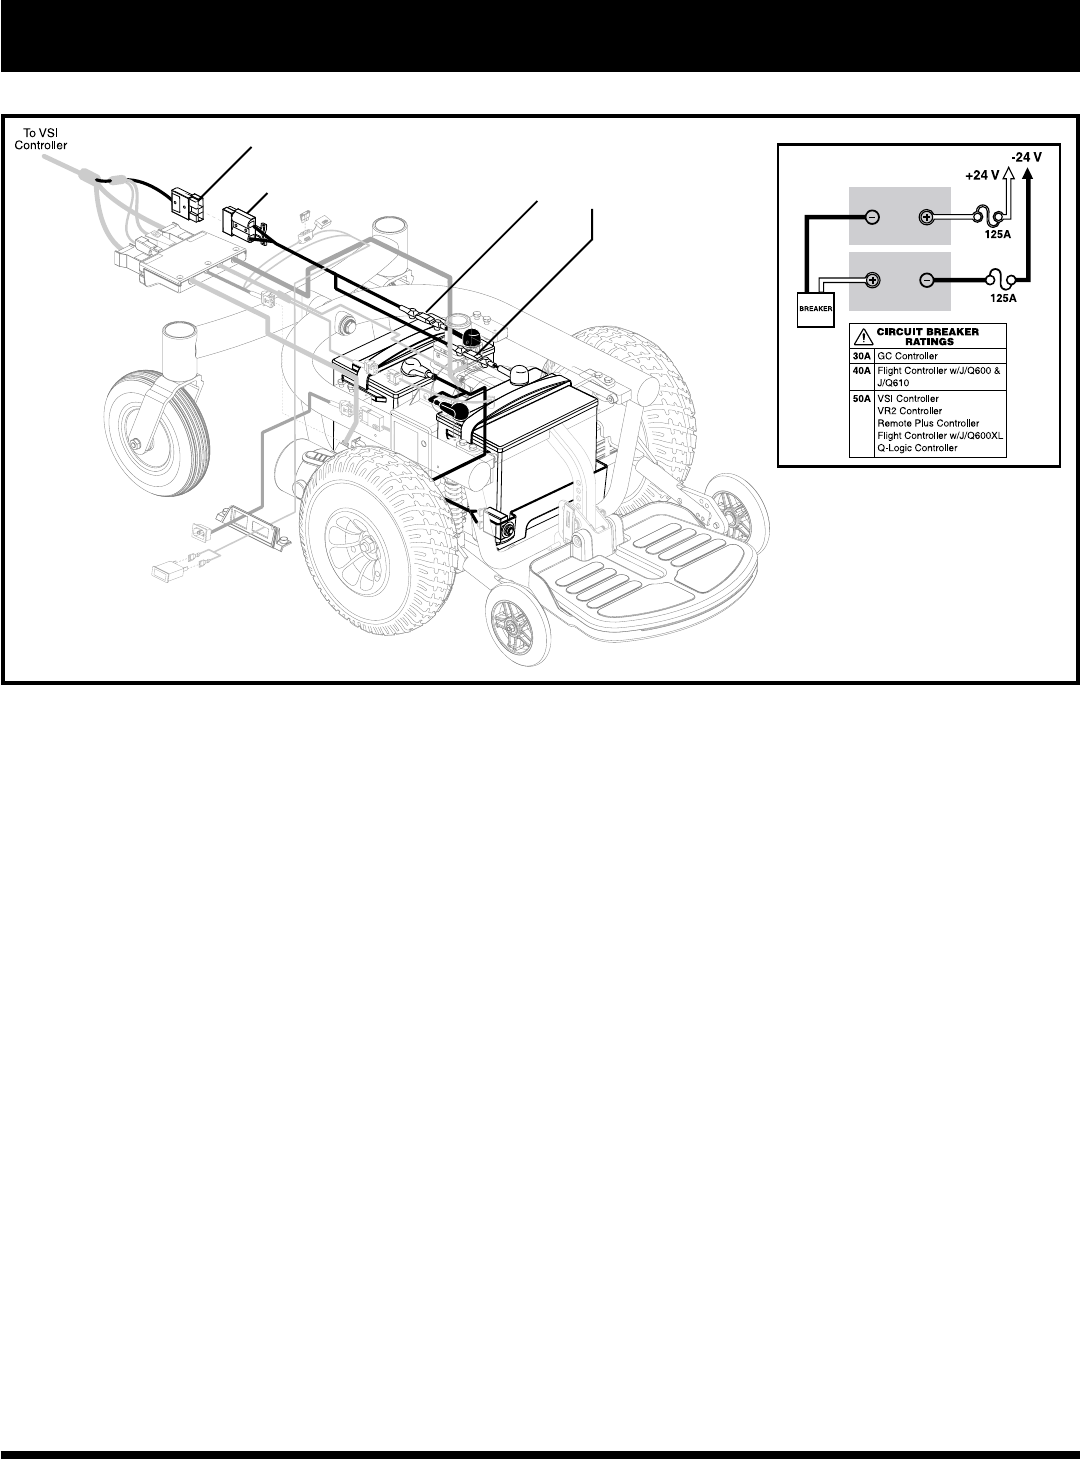 55cd0a64 9f56 4b5b bb6f 66cc883674a7 bg2c page 44 of pride mobility mobility aid 1103 ultra user guide jazzy 1103 ultra wiring diagram at readyjetset.co